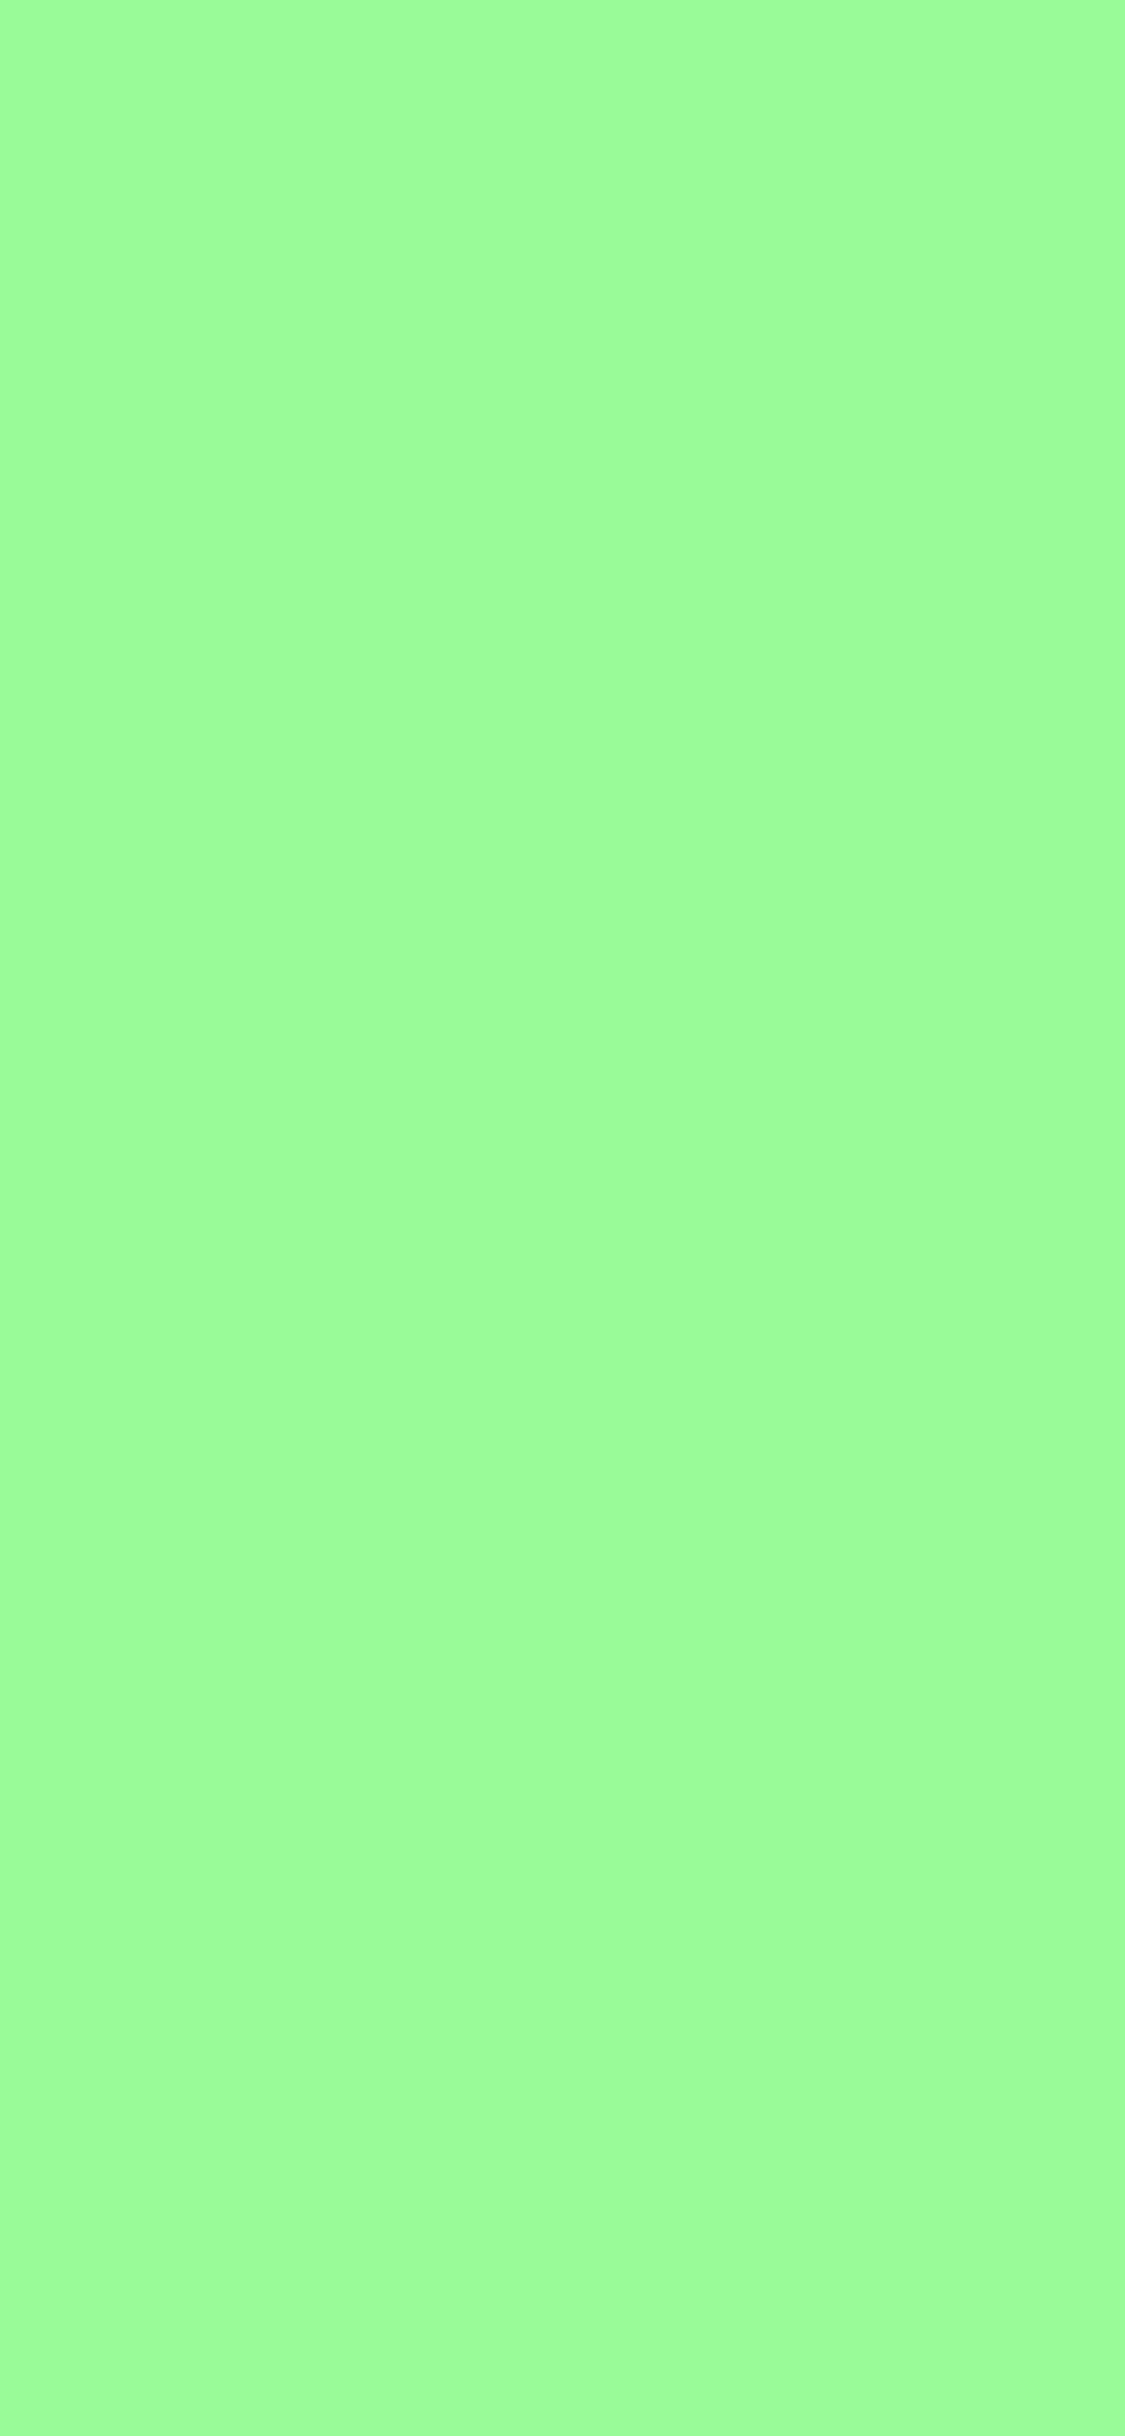 1125x2436 Pale Green Solid Color Background